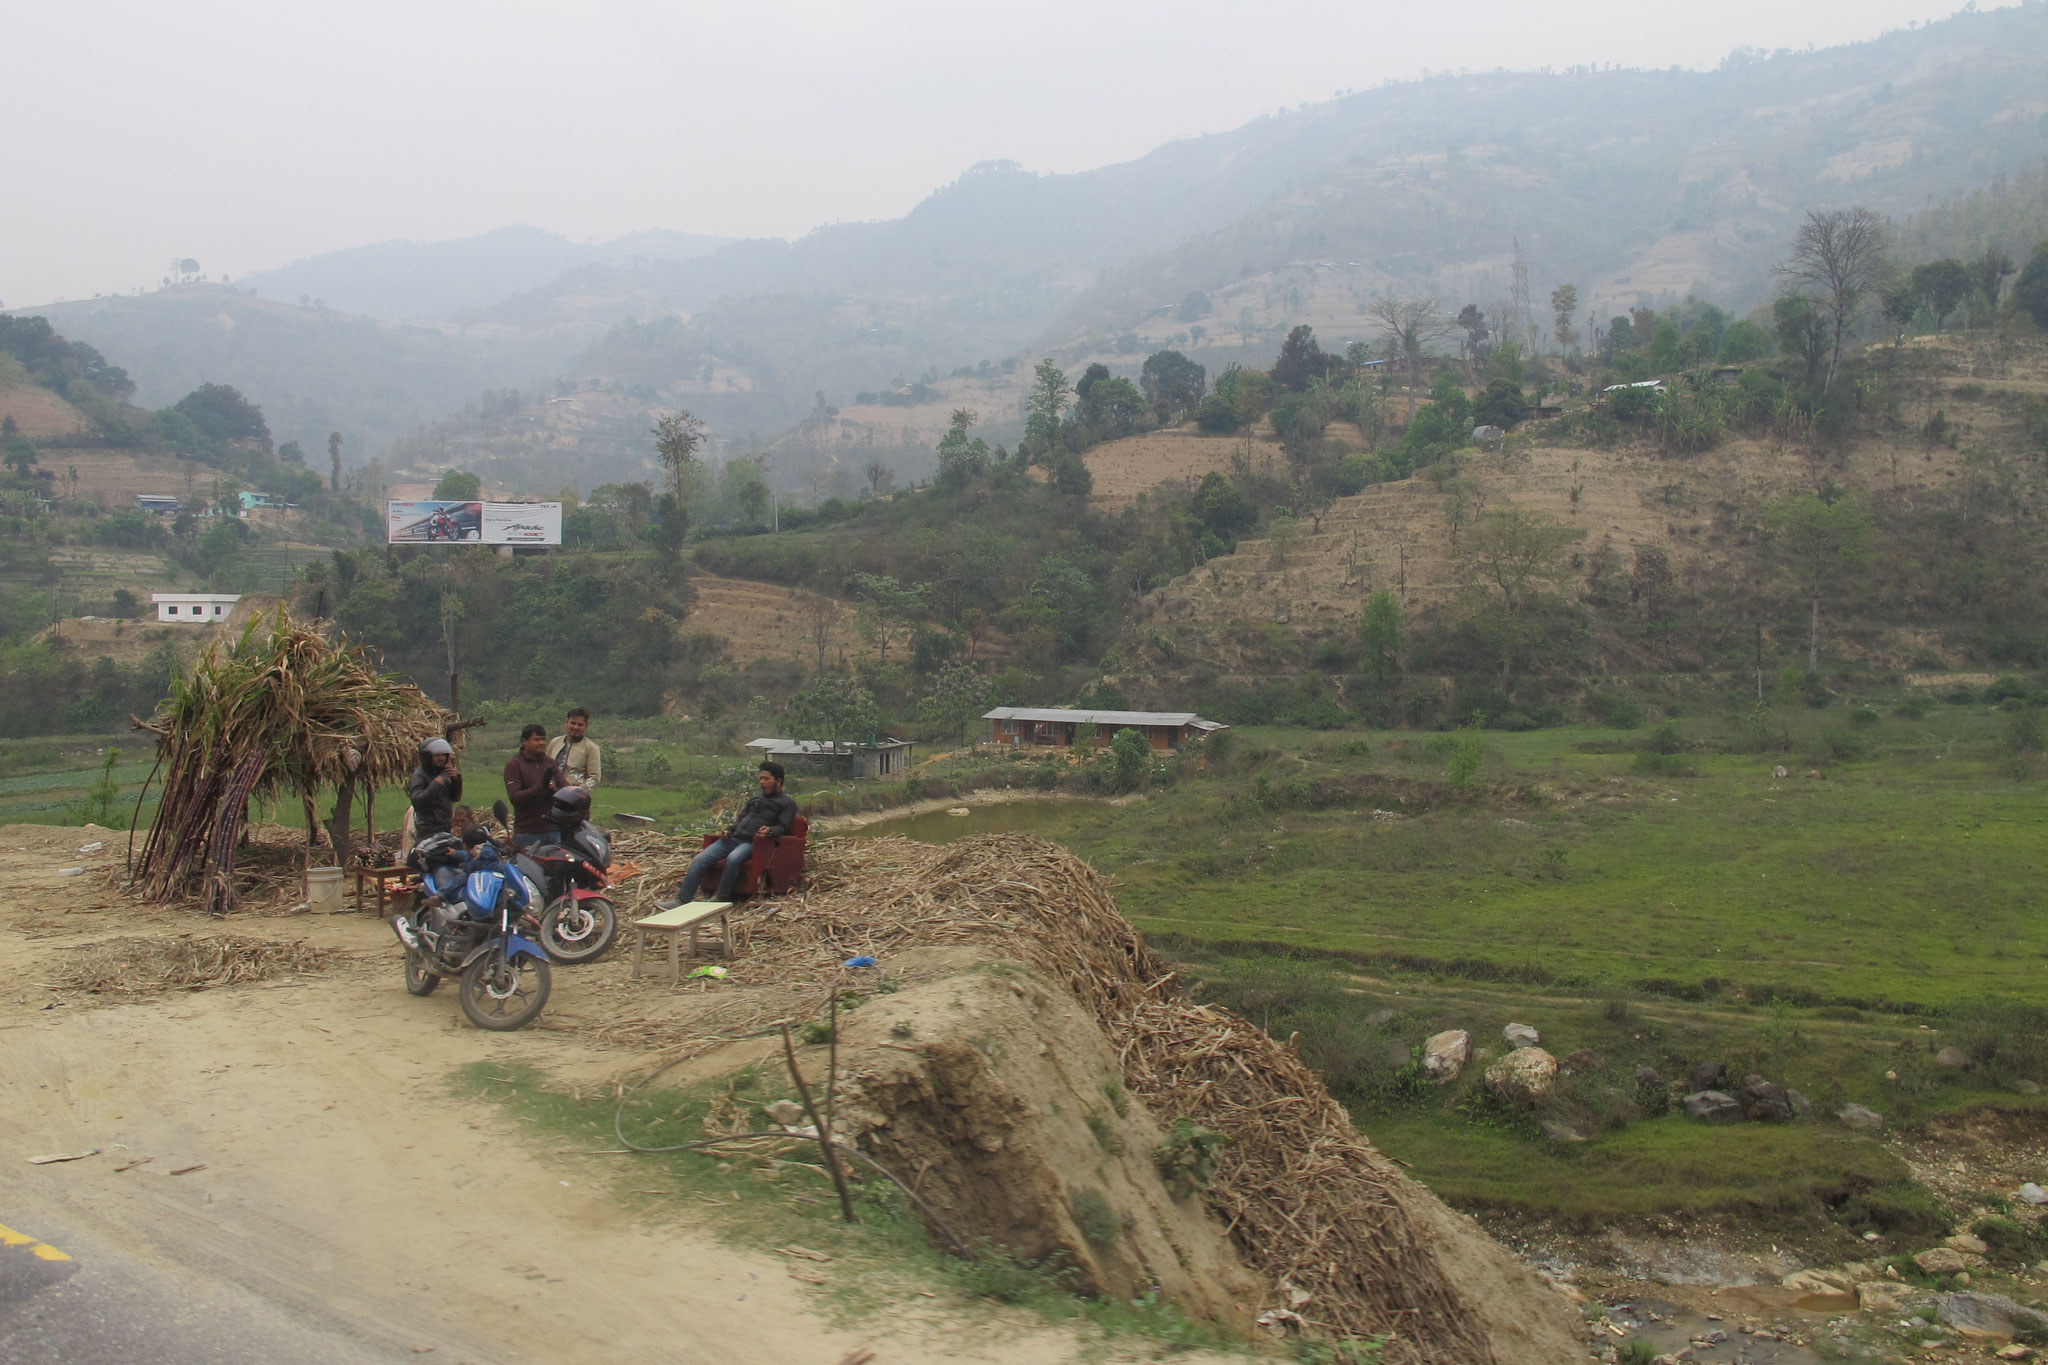 on the way to Chitwan